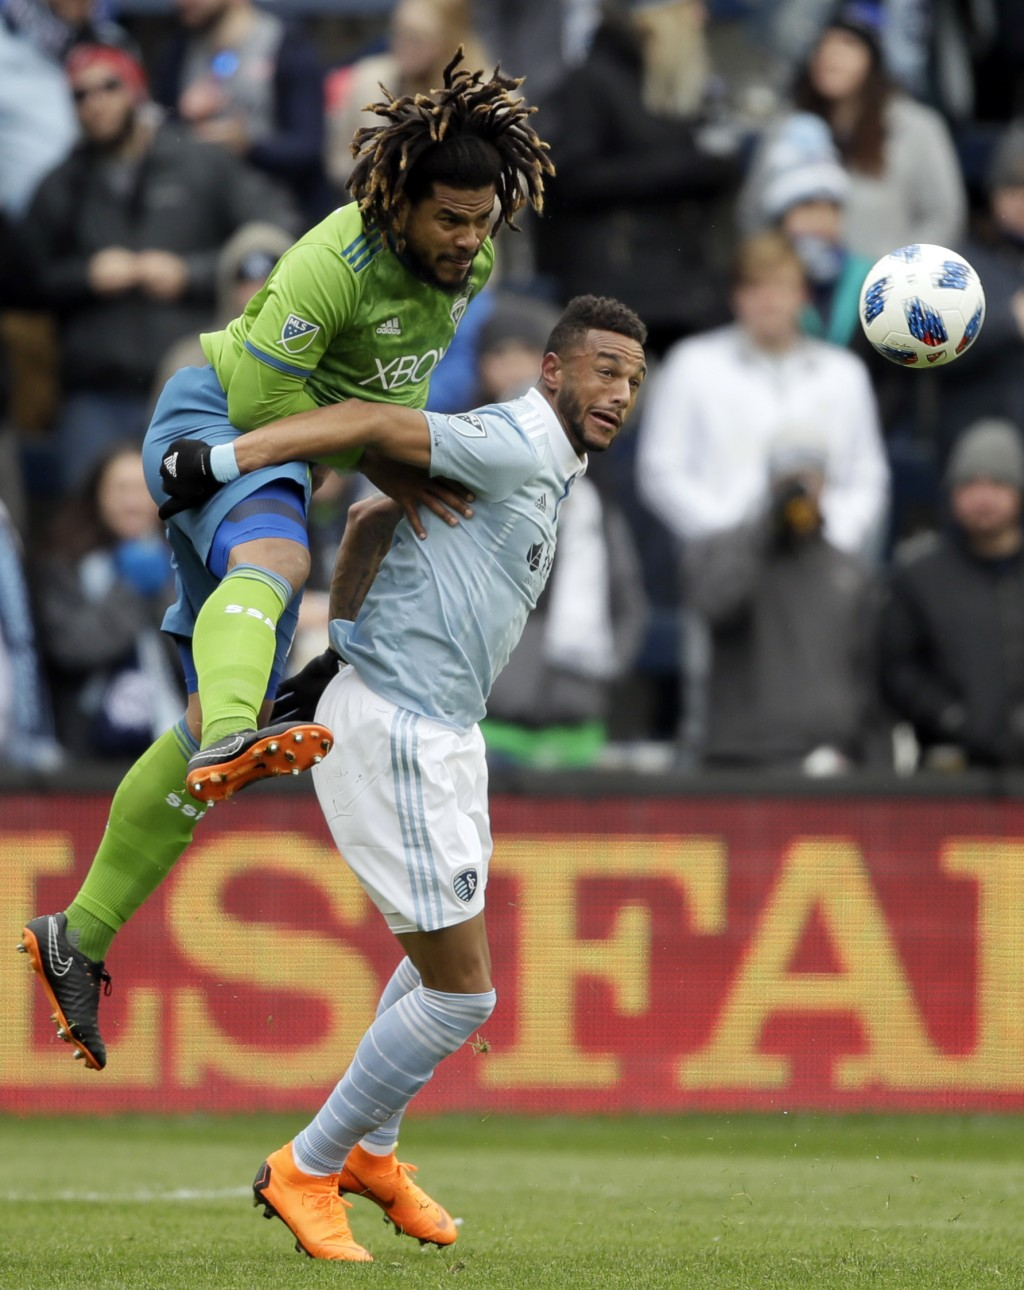 Seattle Sounders defender Roman Torres, left, heads the ball over Sporting Kansas City forward Khiry Shelton, right, during the first half of an MLS s